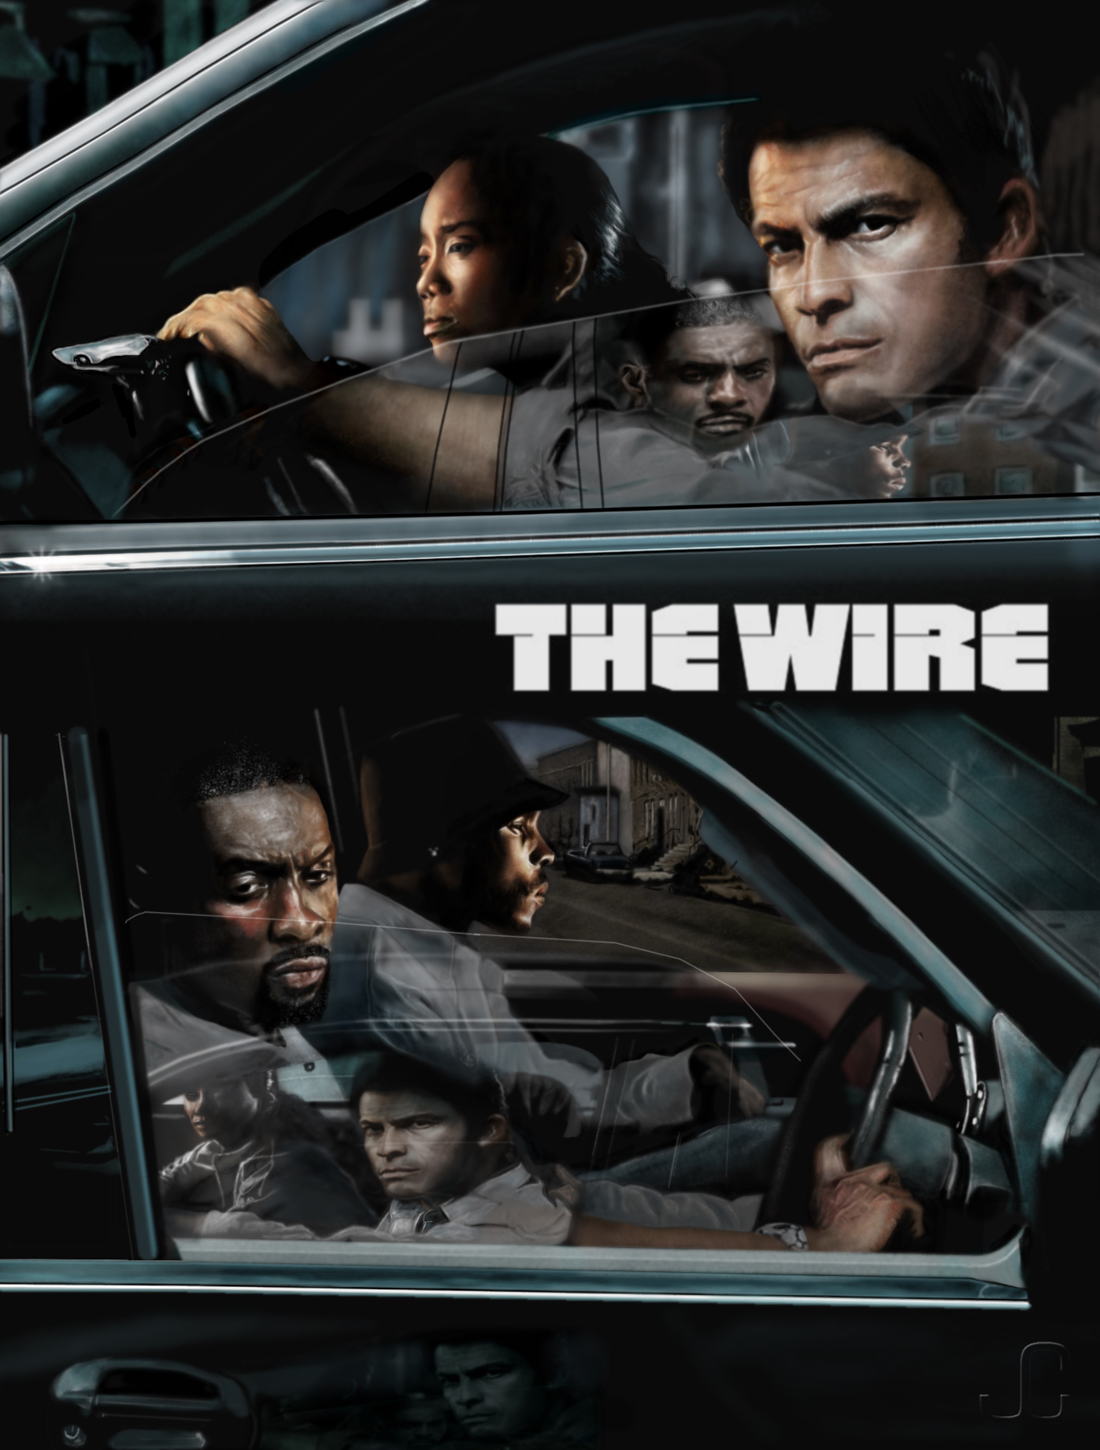 The Wire (TV Series 2008)